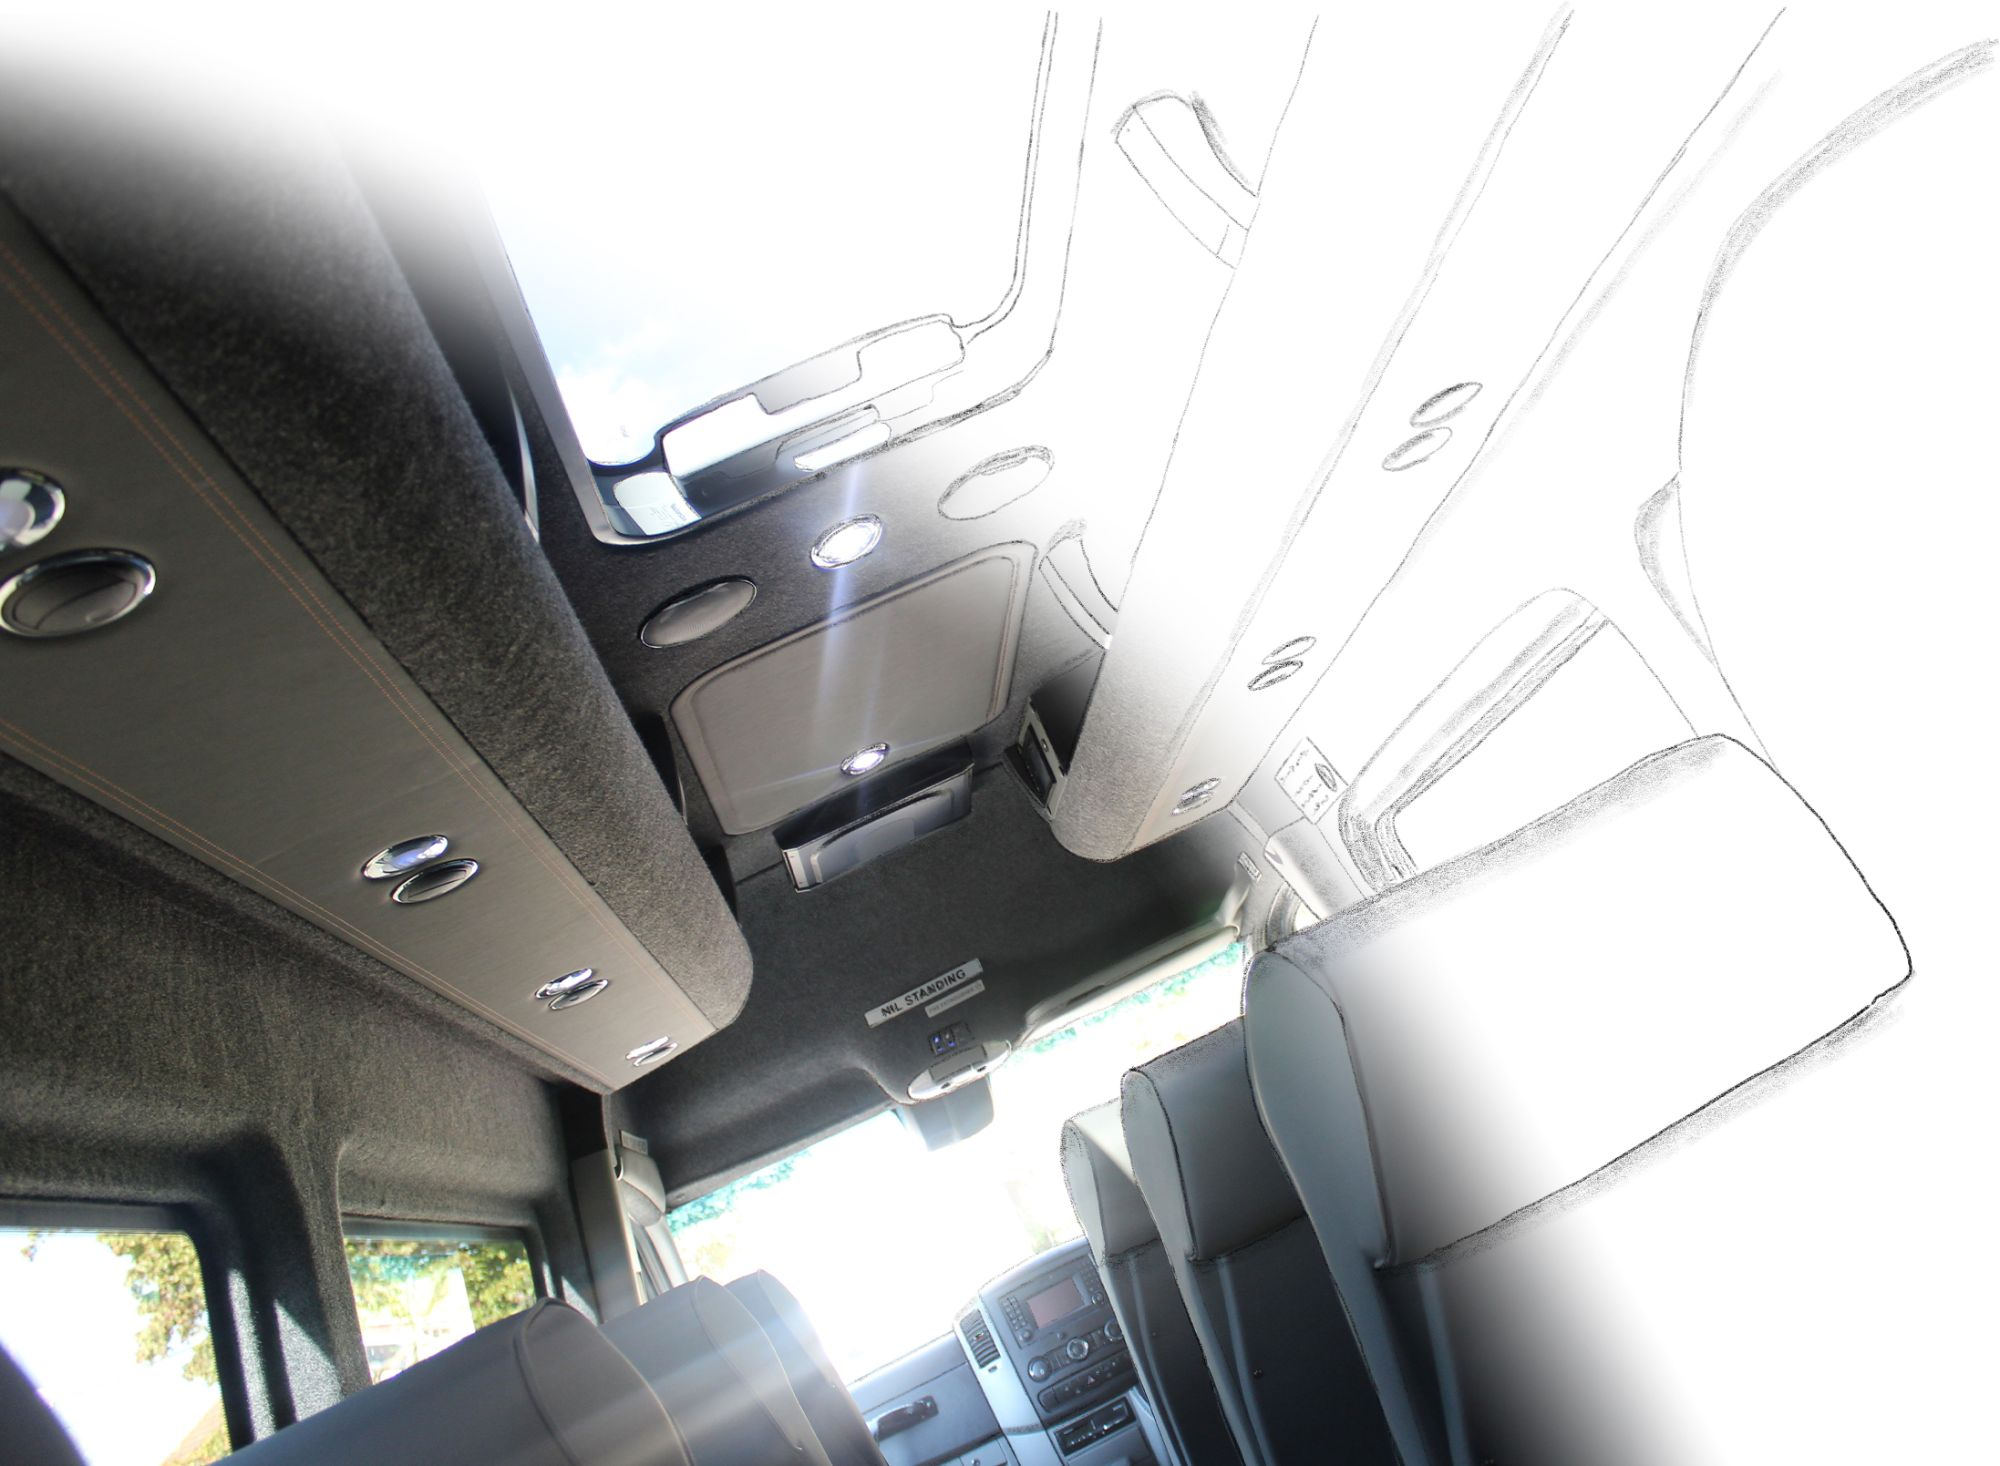 Image of Coach Interior showing Roof and Seating materials